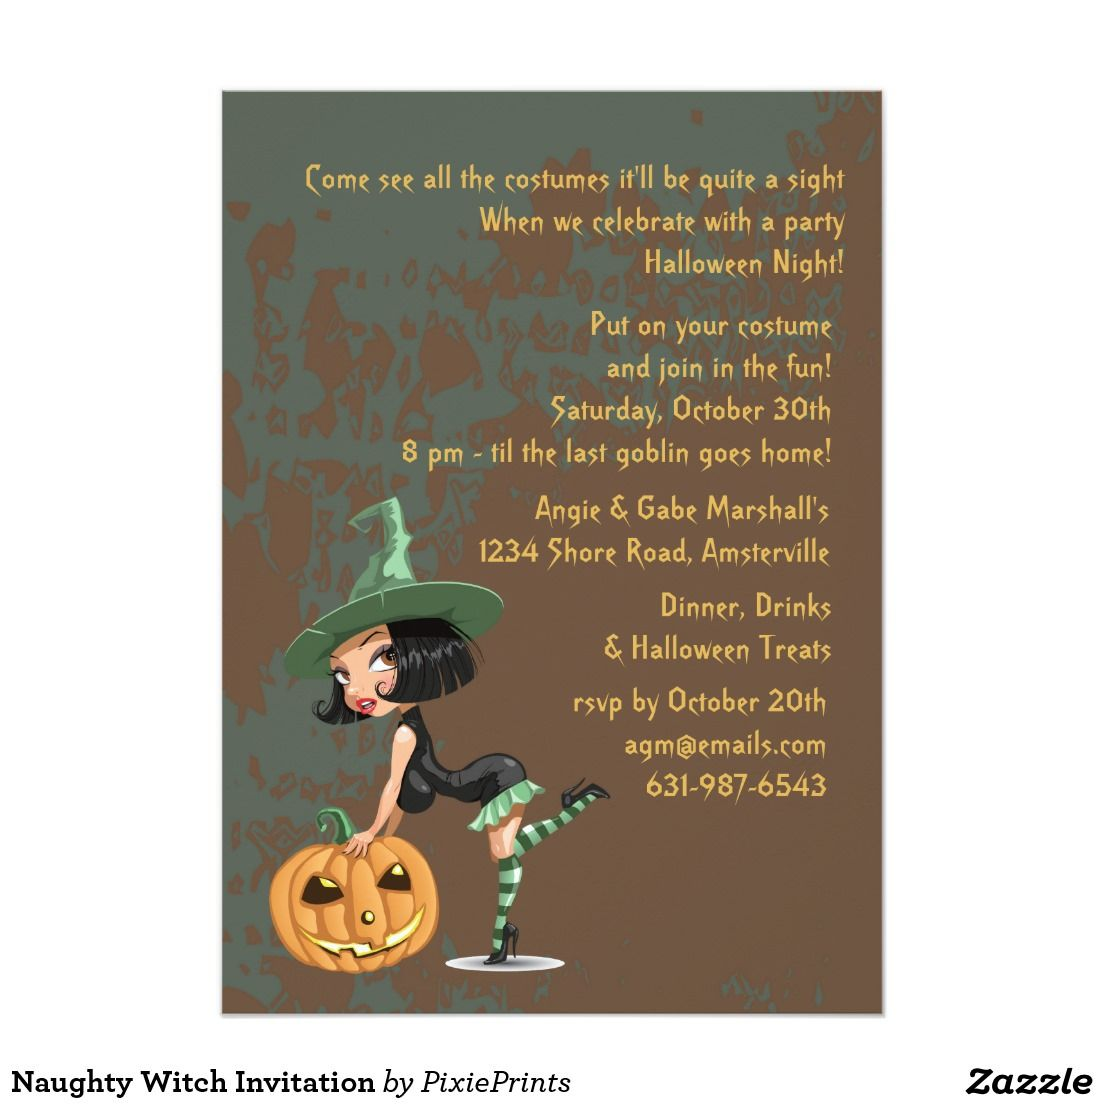 Naughty witch invitation trick or treat halloween party pinterest naughty witch invitation monicamarmolfo Image collections